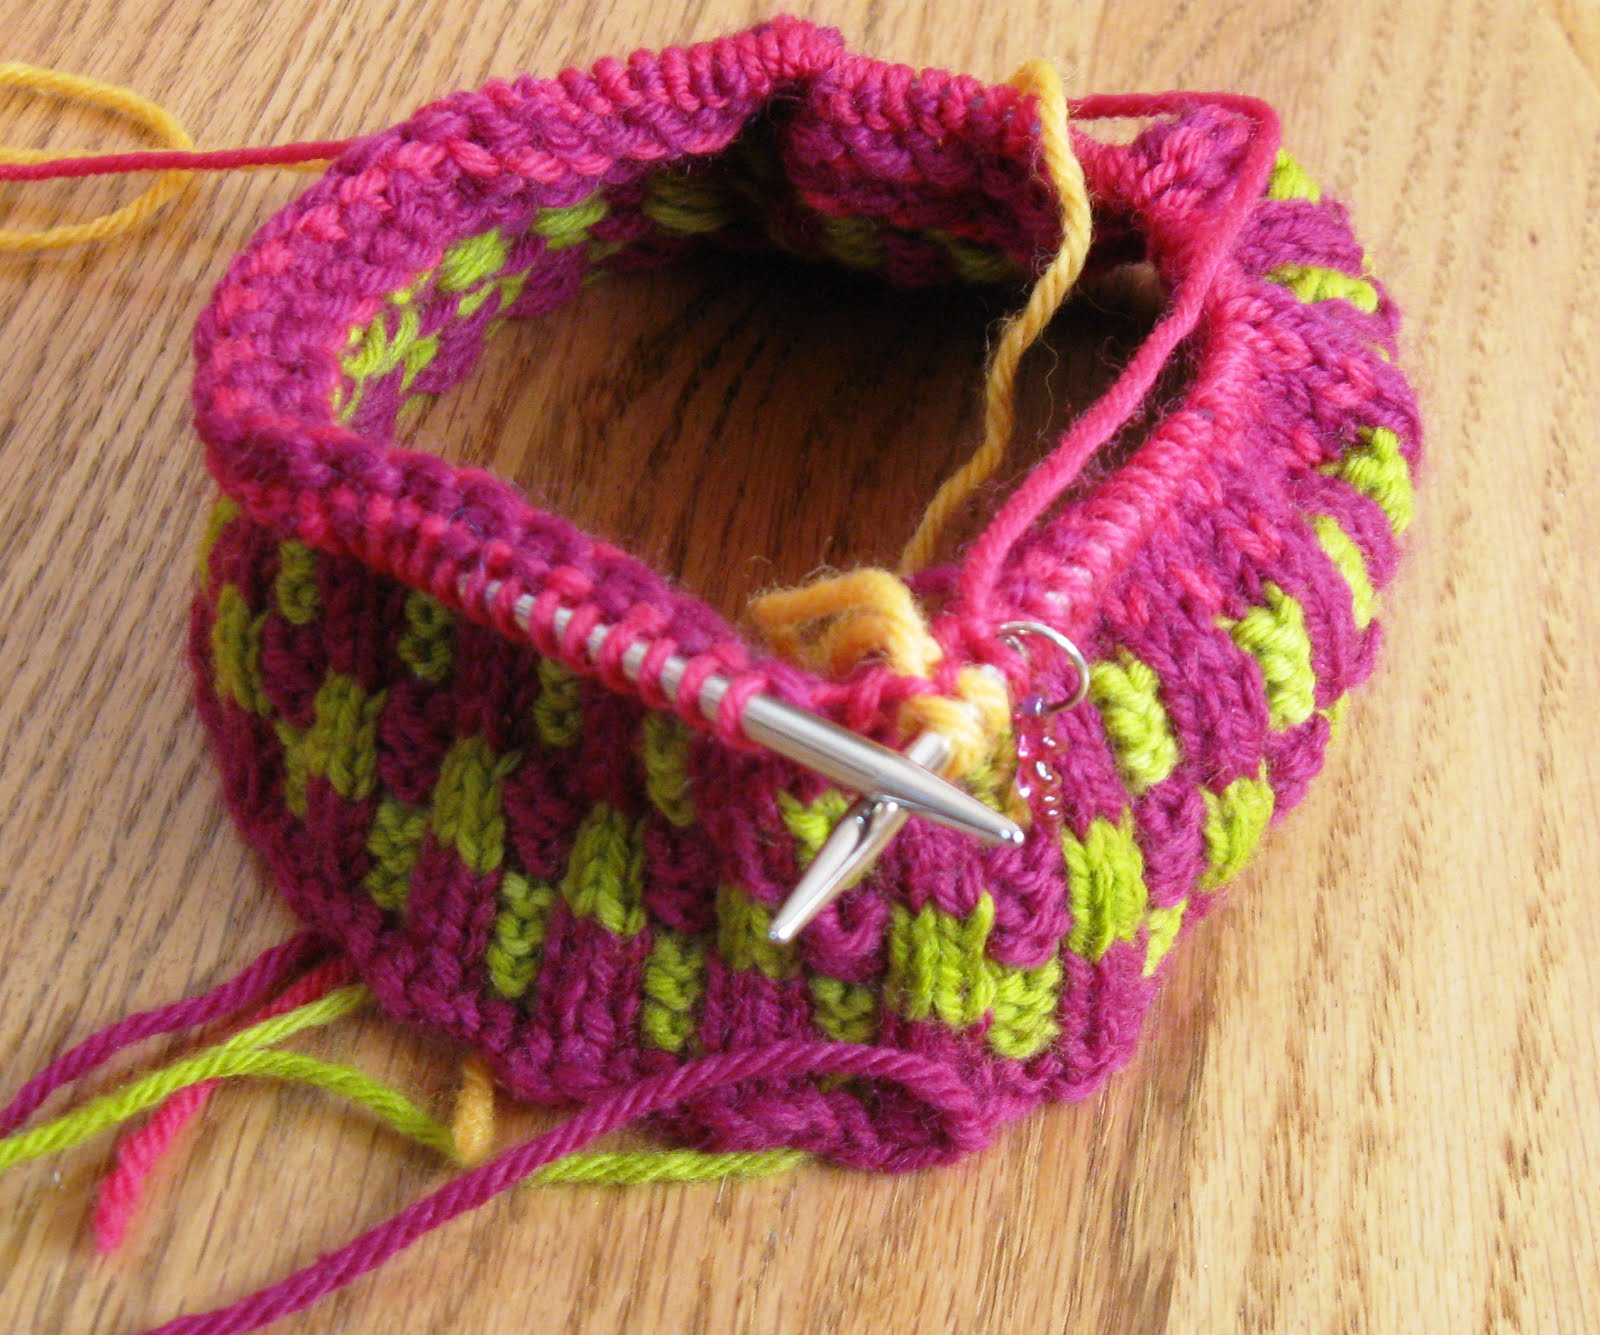 Knitting Joining In The Round Circular Needles : Kiwi knits about knitting needles